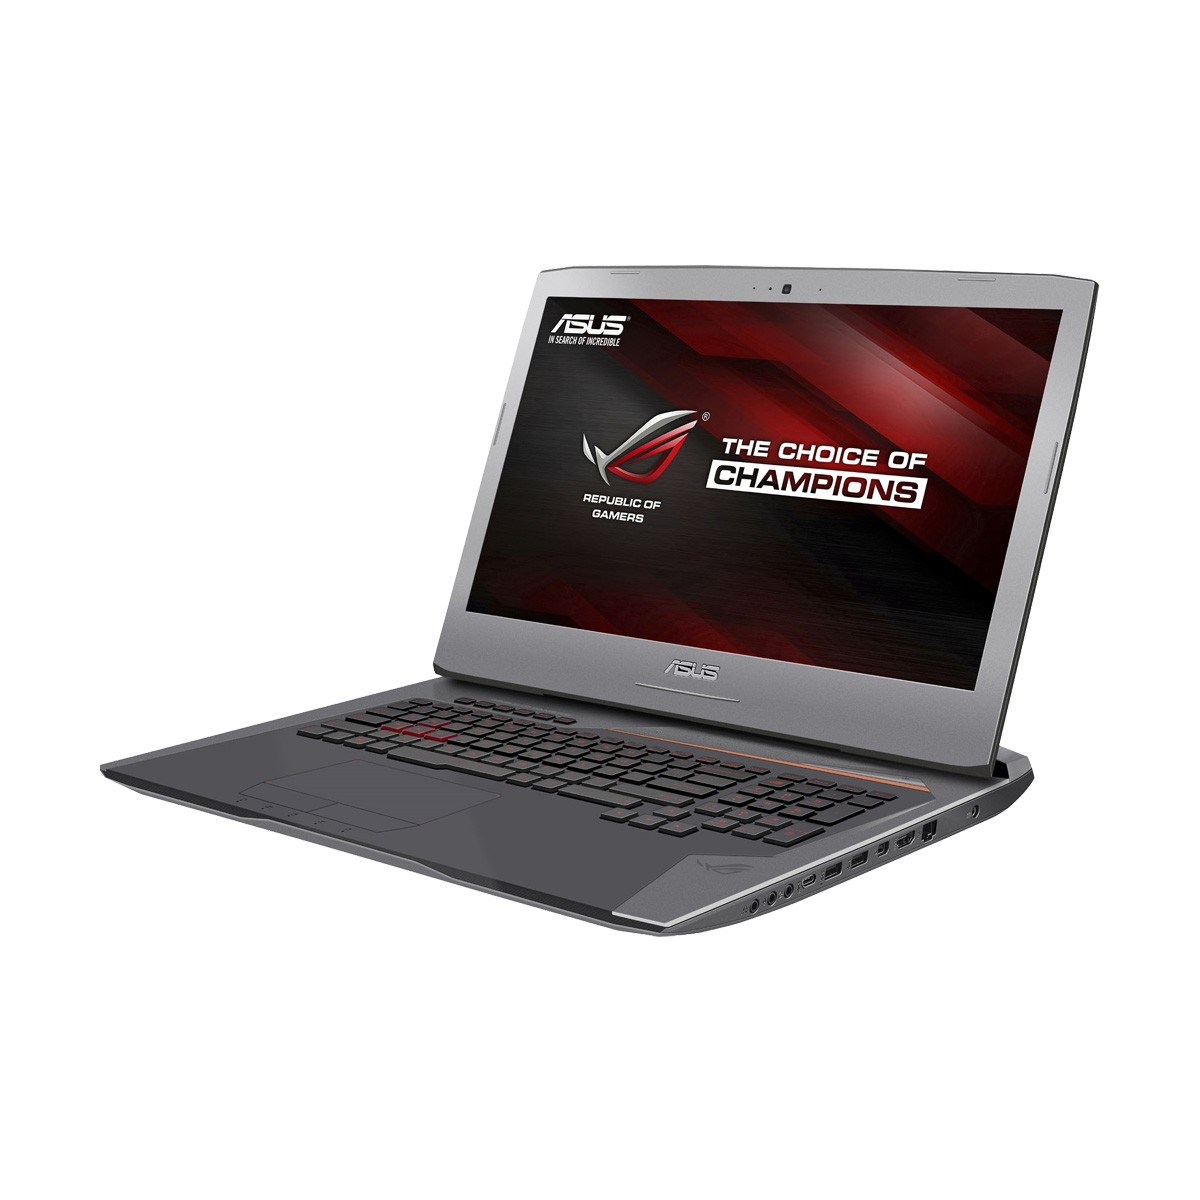 Asus ROG G752VS Core i7 6700HQ